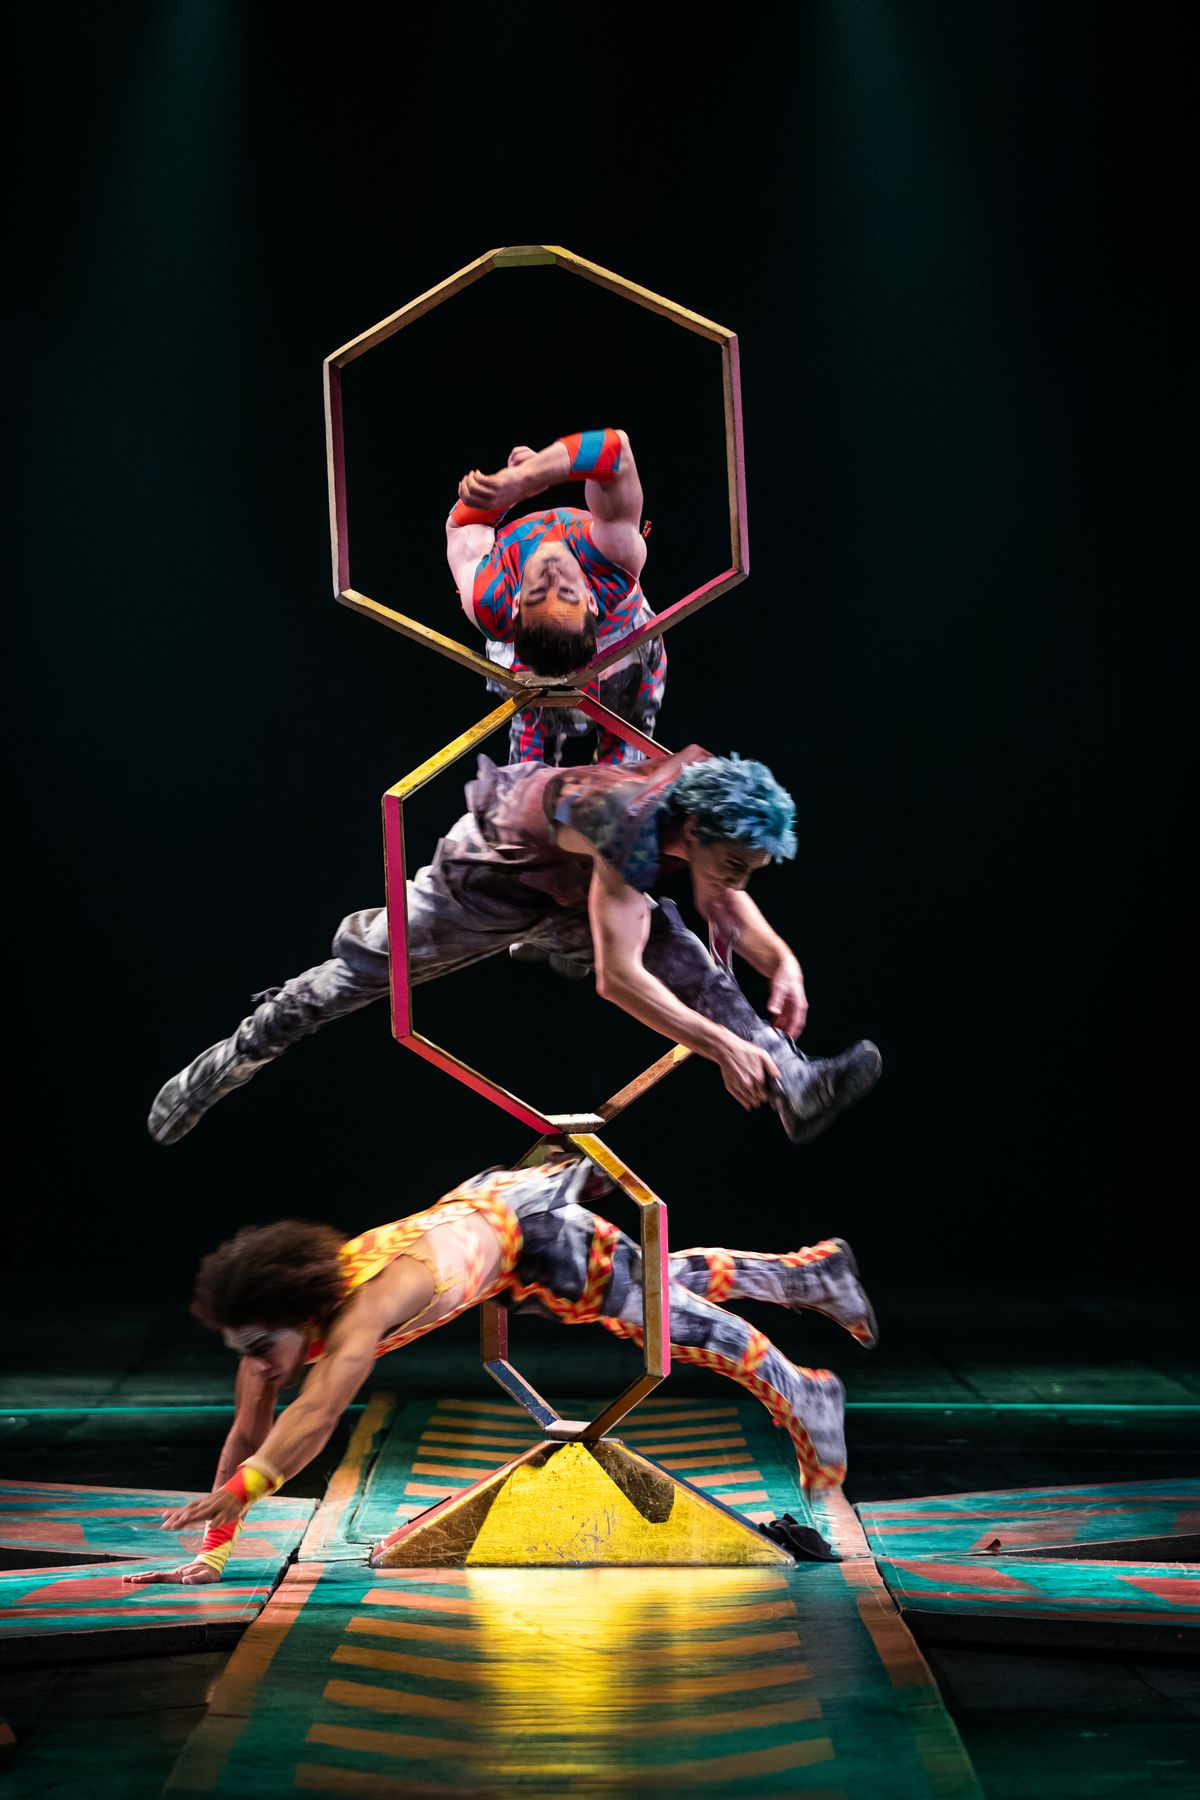 """Kevin Beverley is among the troupe performing the intricate shape-diving hoop routine in Cirque du Soleil's """"Volta."""" 